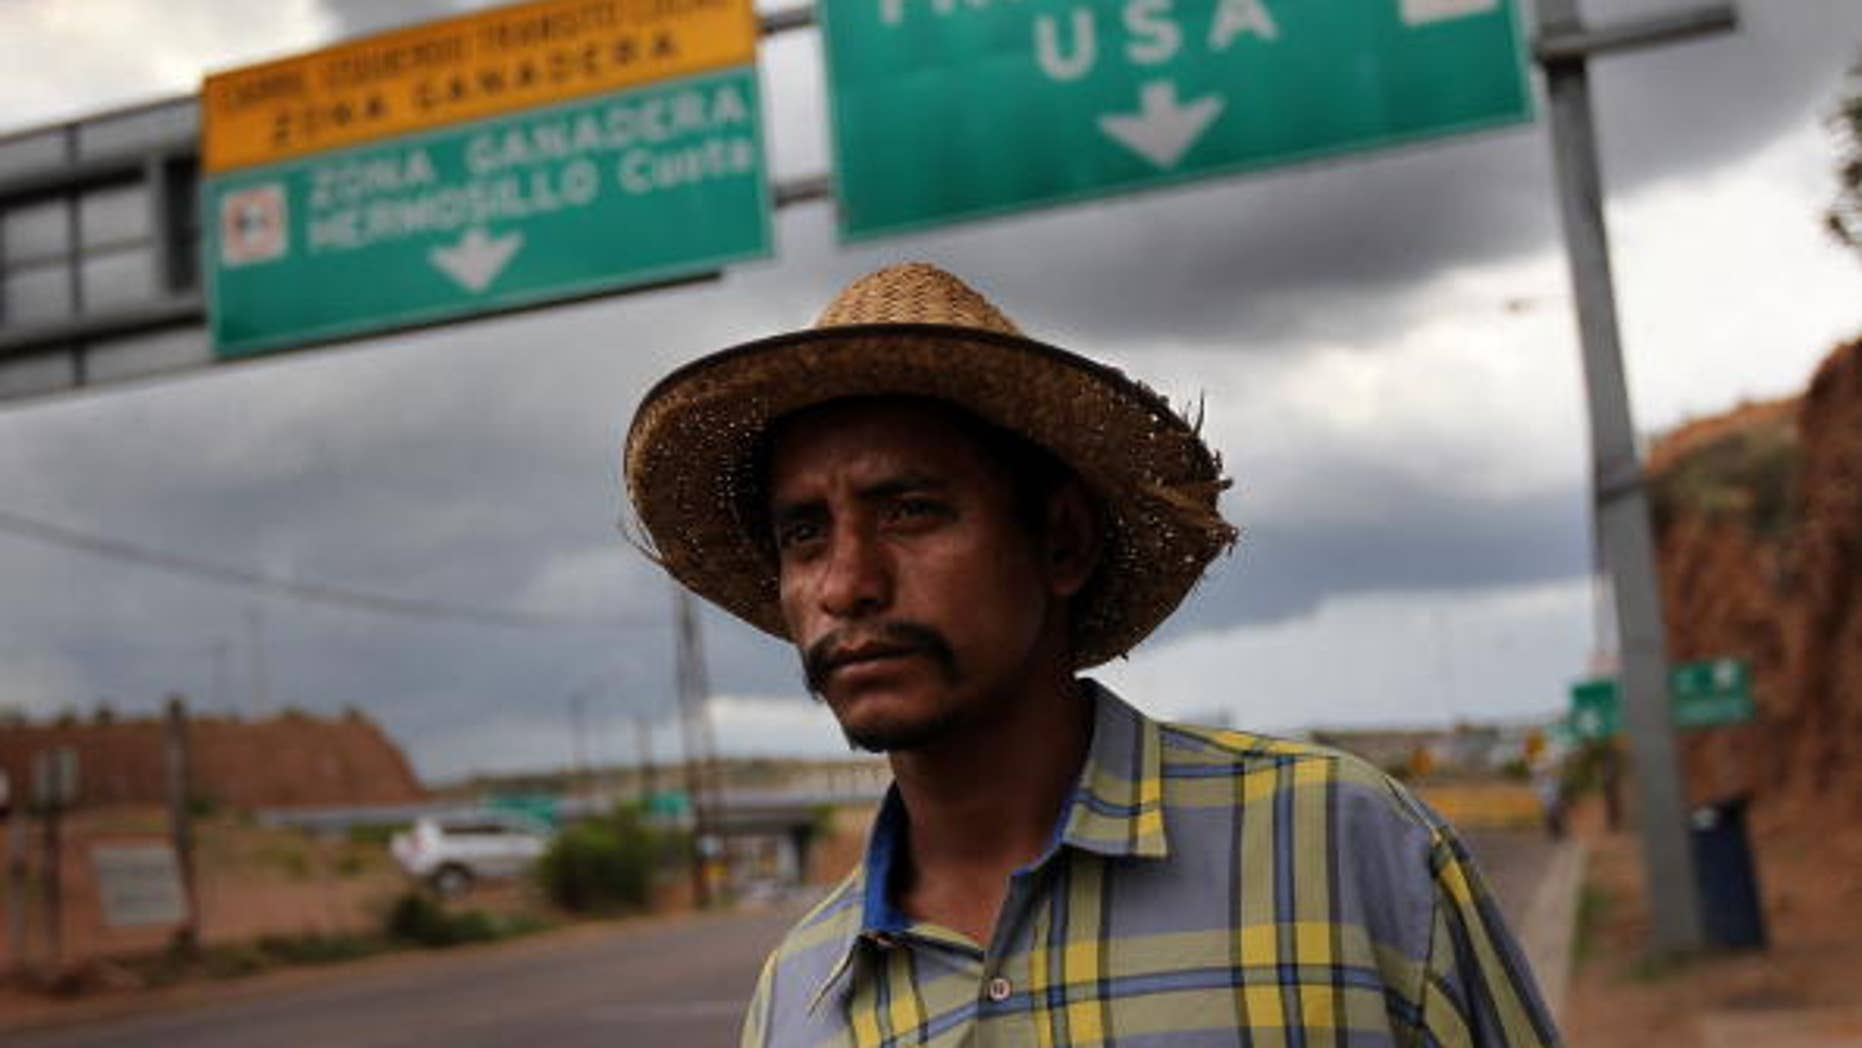 Jul 27:   Mexican immigrant Luis Manuel, 29, walks along the U.S.- Mexico border after being deported from Arizona to Nogales, Mexico.